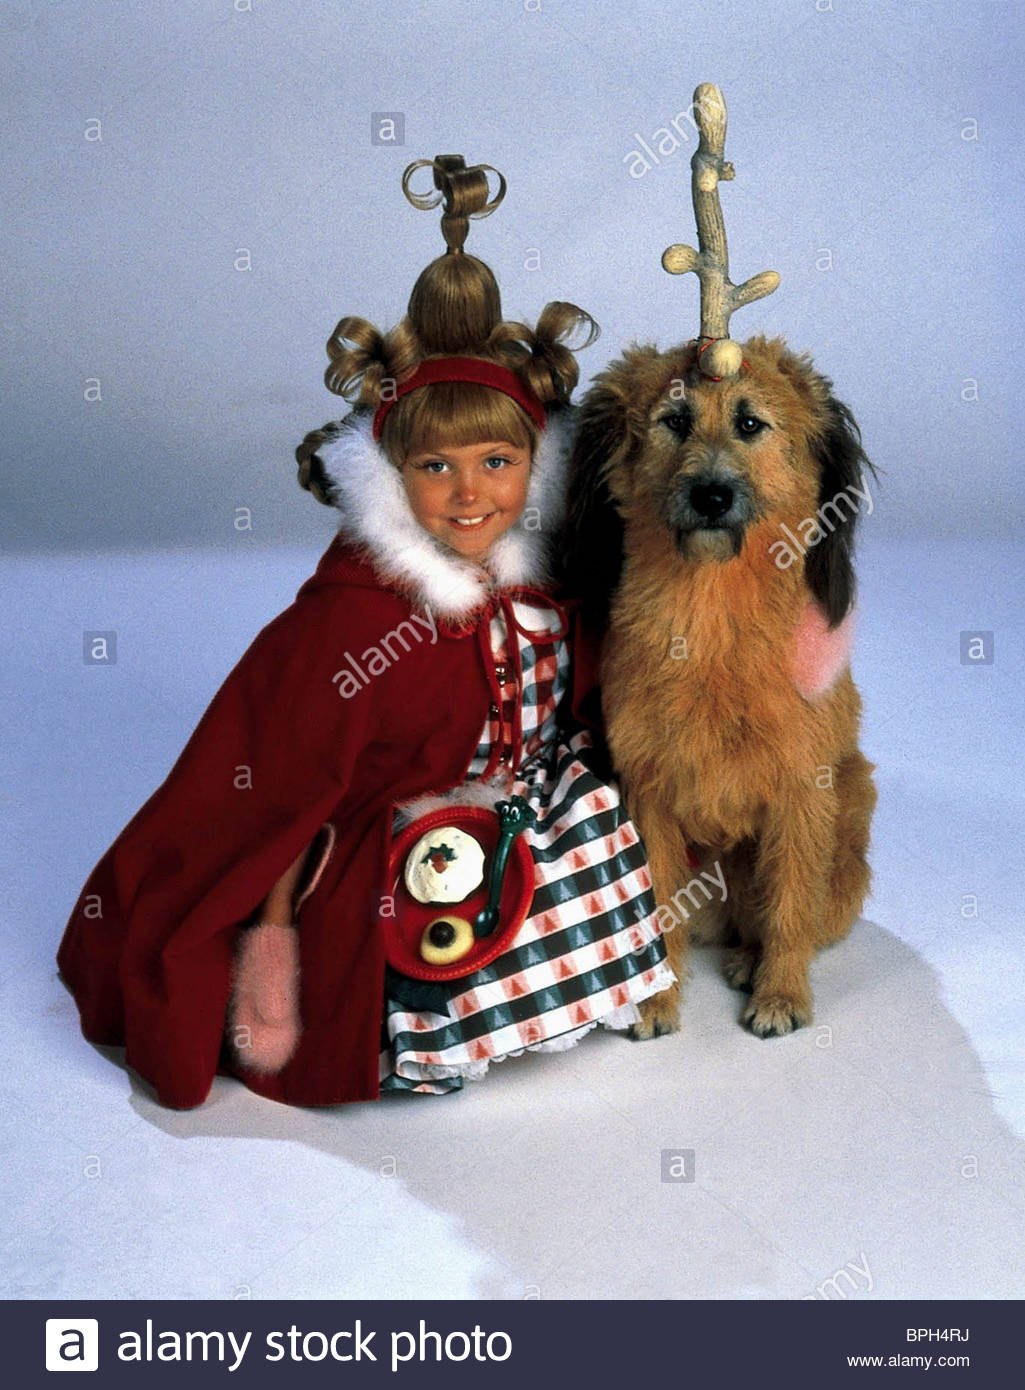 taylor momsen max the dog how the grinch stole christmas 2000 stock